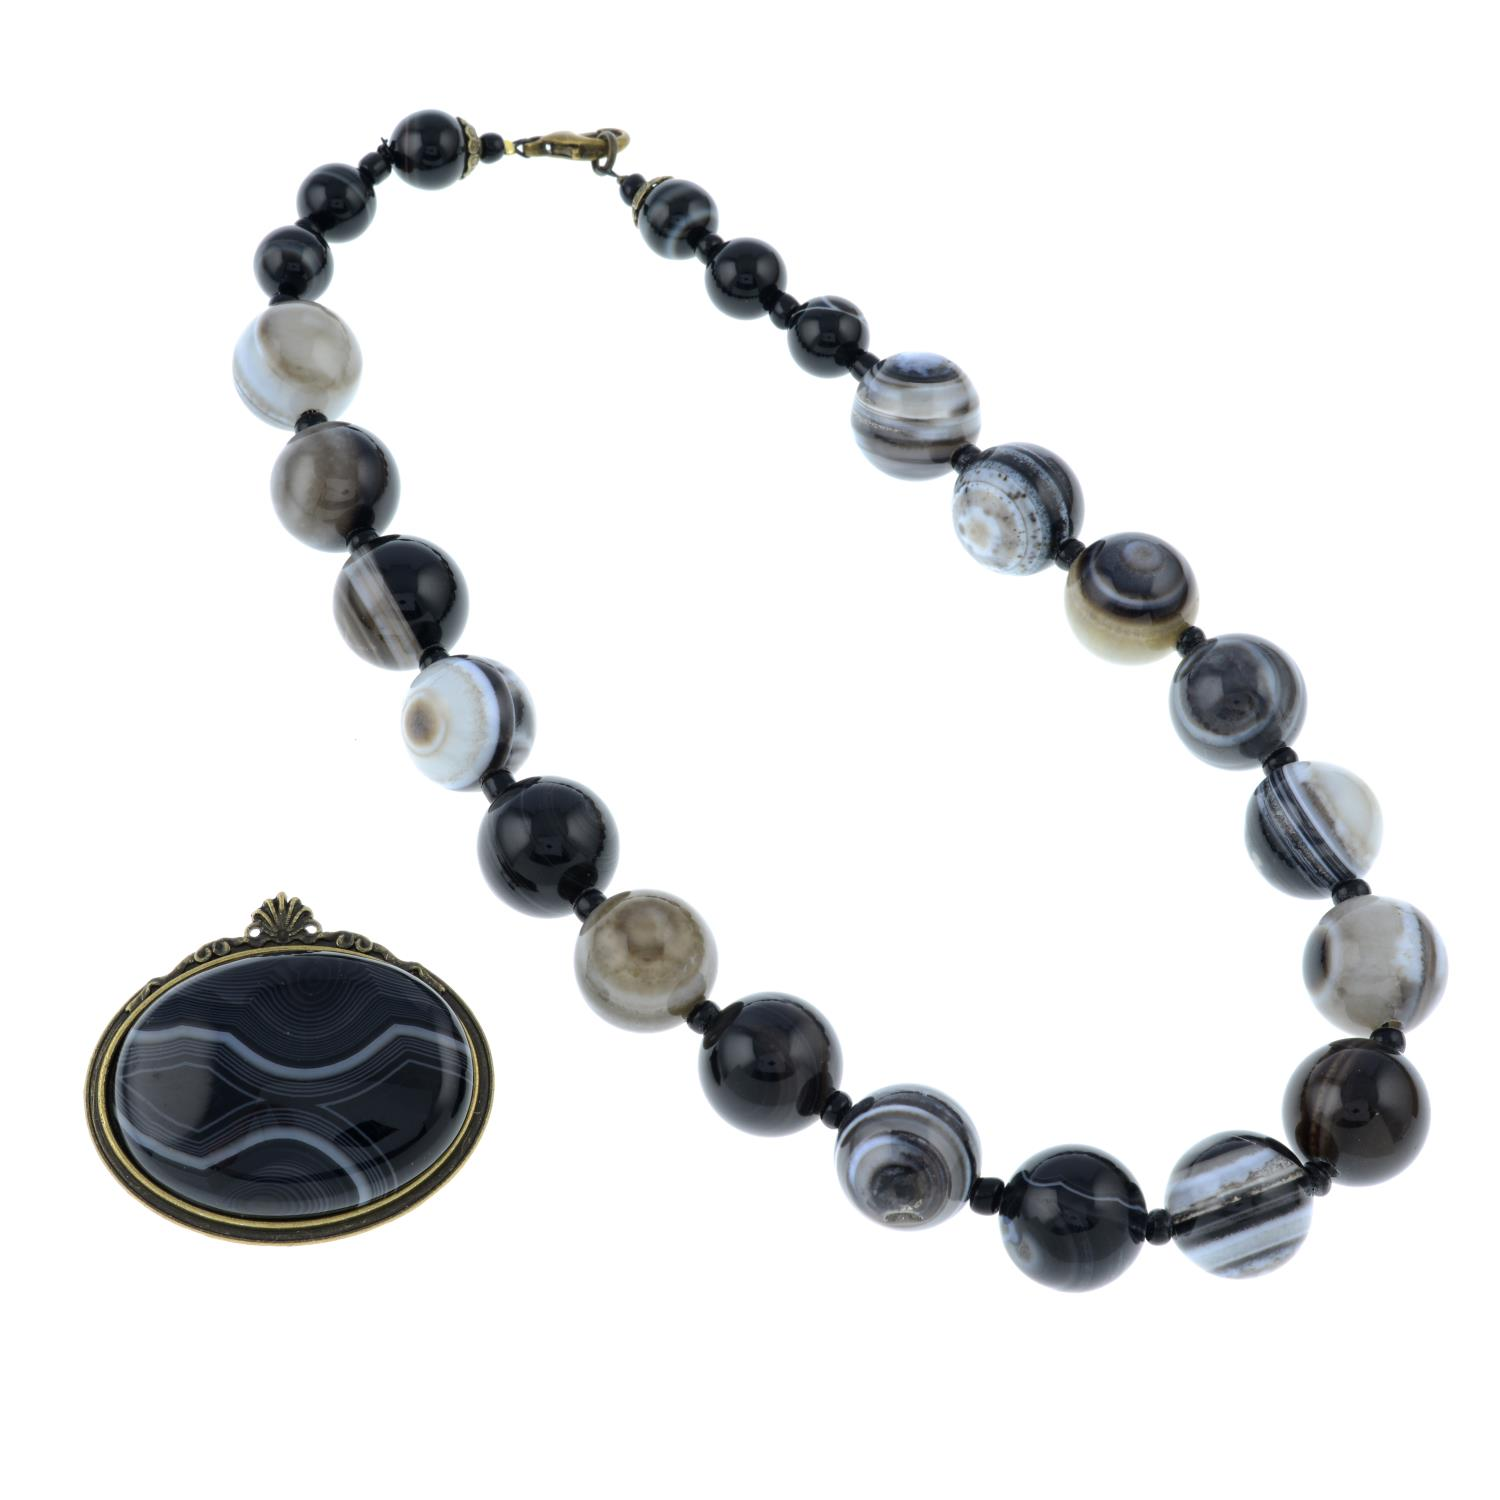 A banded agate brooch, pair of earrings and a necklace.Length of necklace 43.3cms. - Image 2 of 2